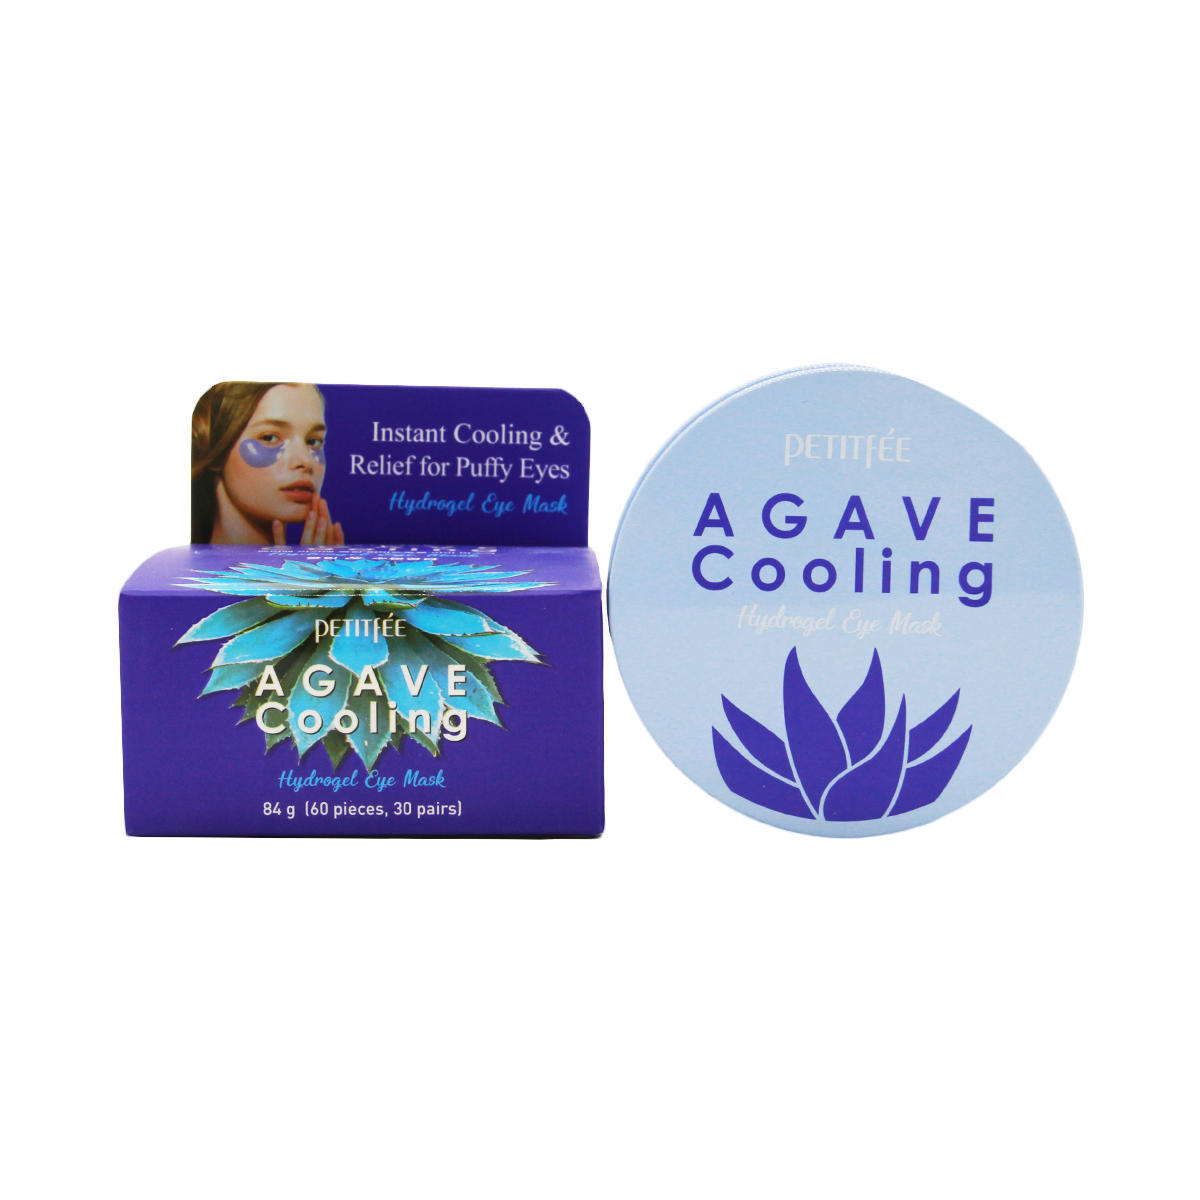 Патчи Патчи для глаз Petitfee Agave Cooling Hydrogel Eye Patch, 60 шт import_files_2b_2b37588c5b1d11e980fb3408042974b1_2b37588d5b1d11e980fb3408042974b1.jpg